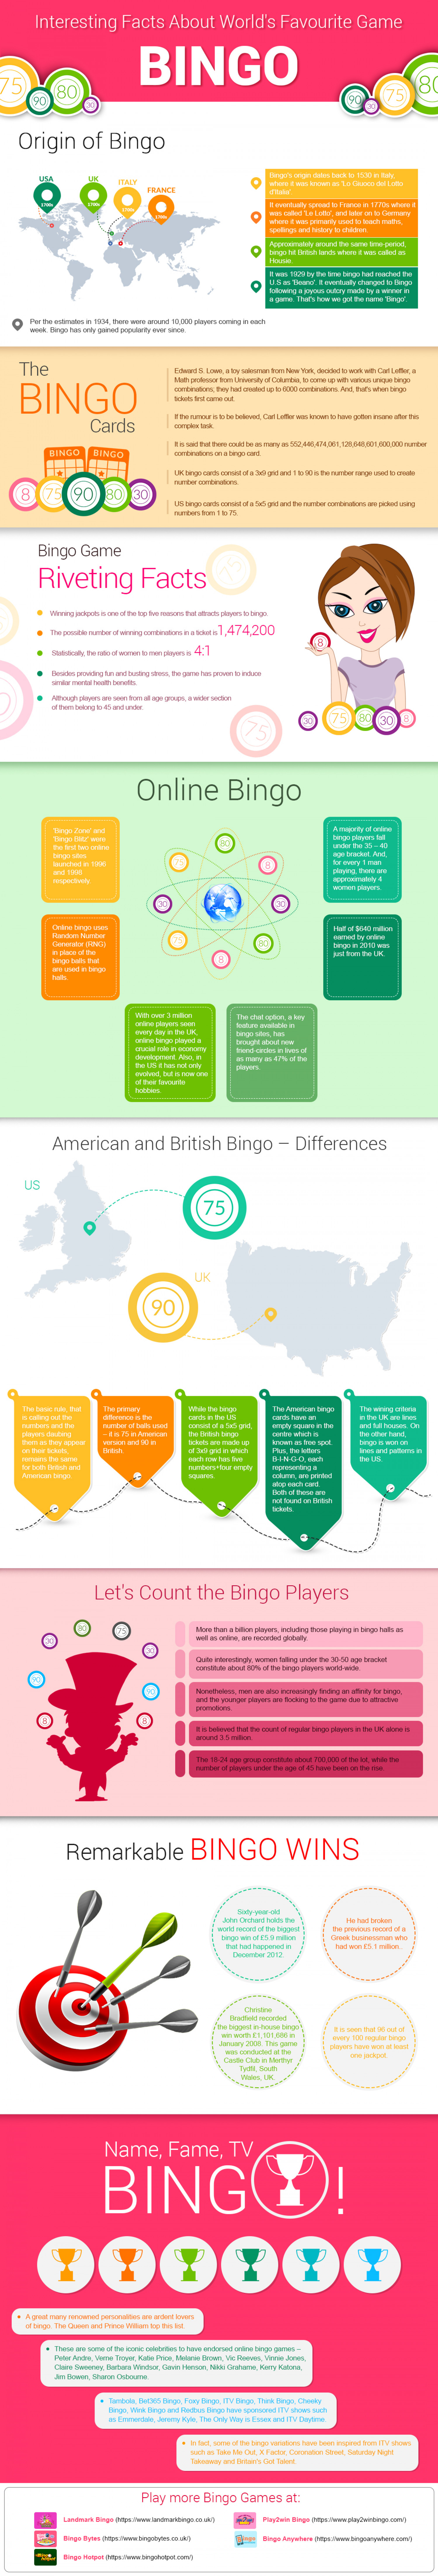 Interesting Facts about World's Favourite Game Bingo Infographic